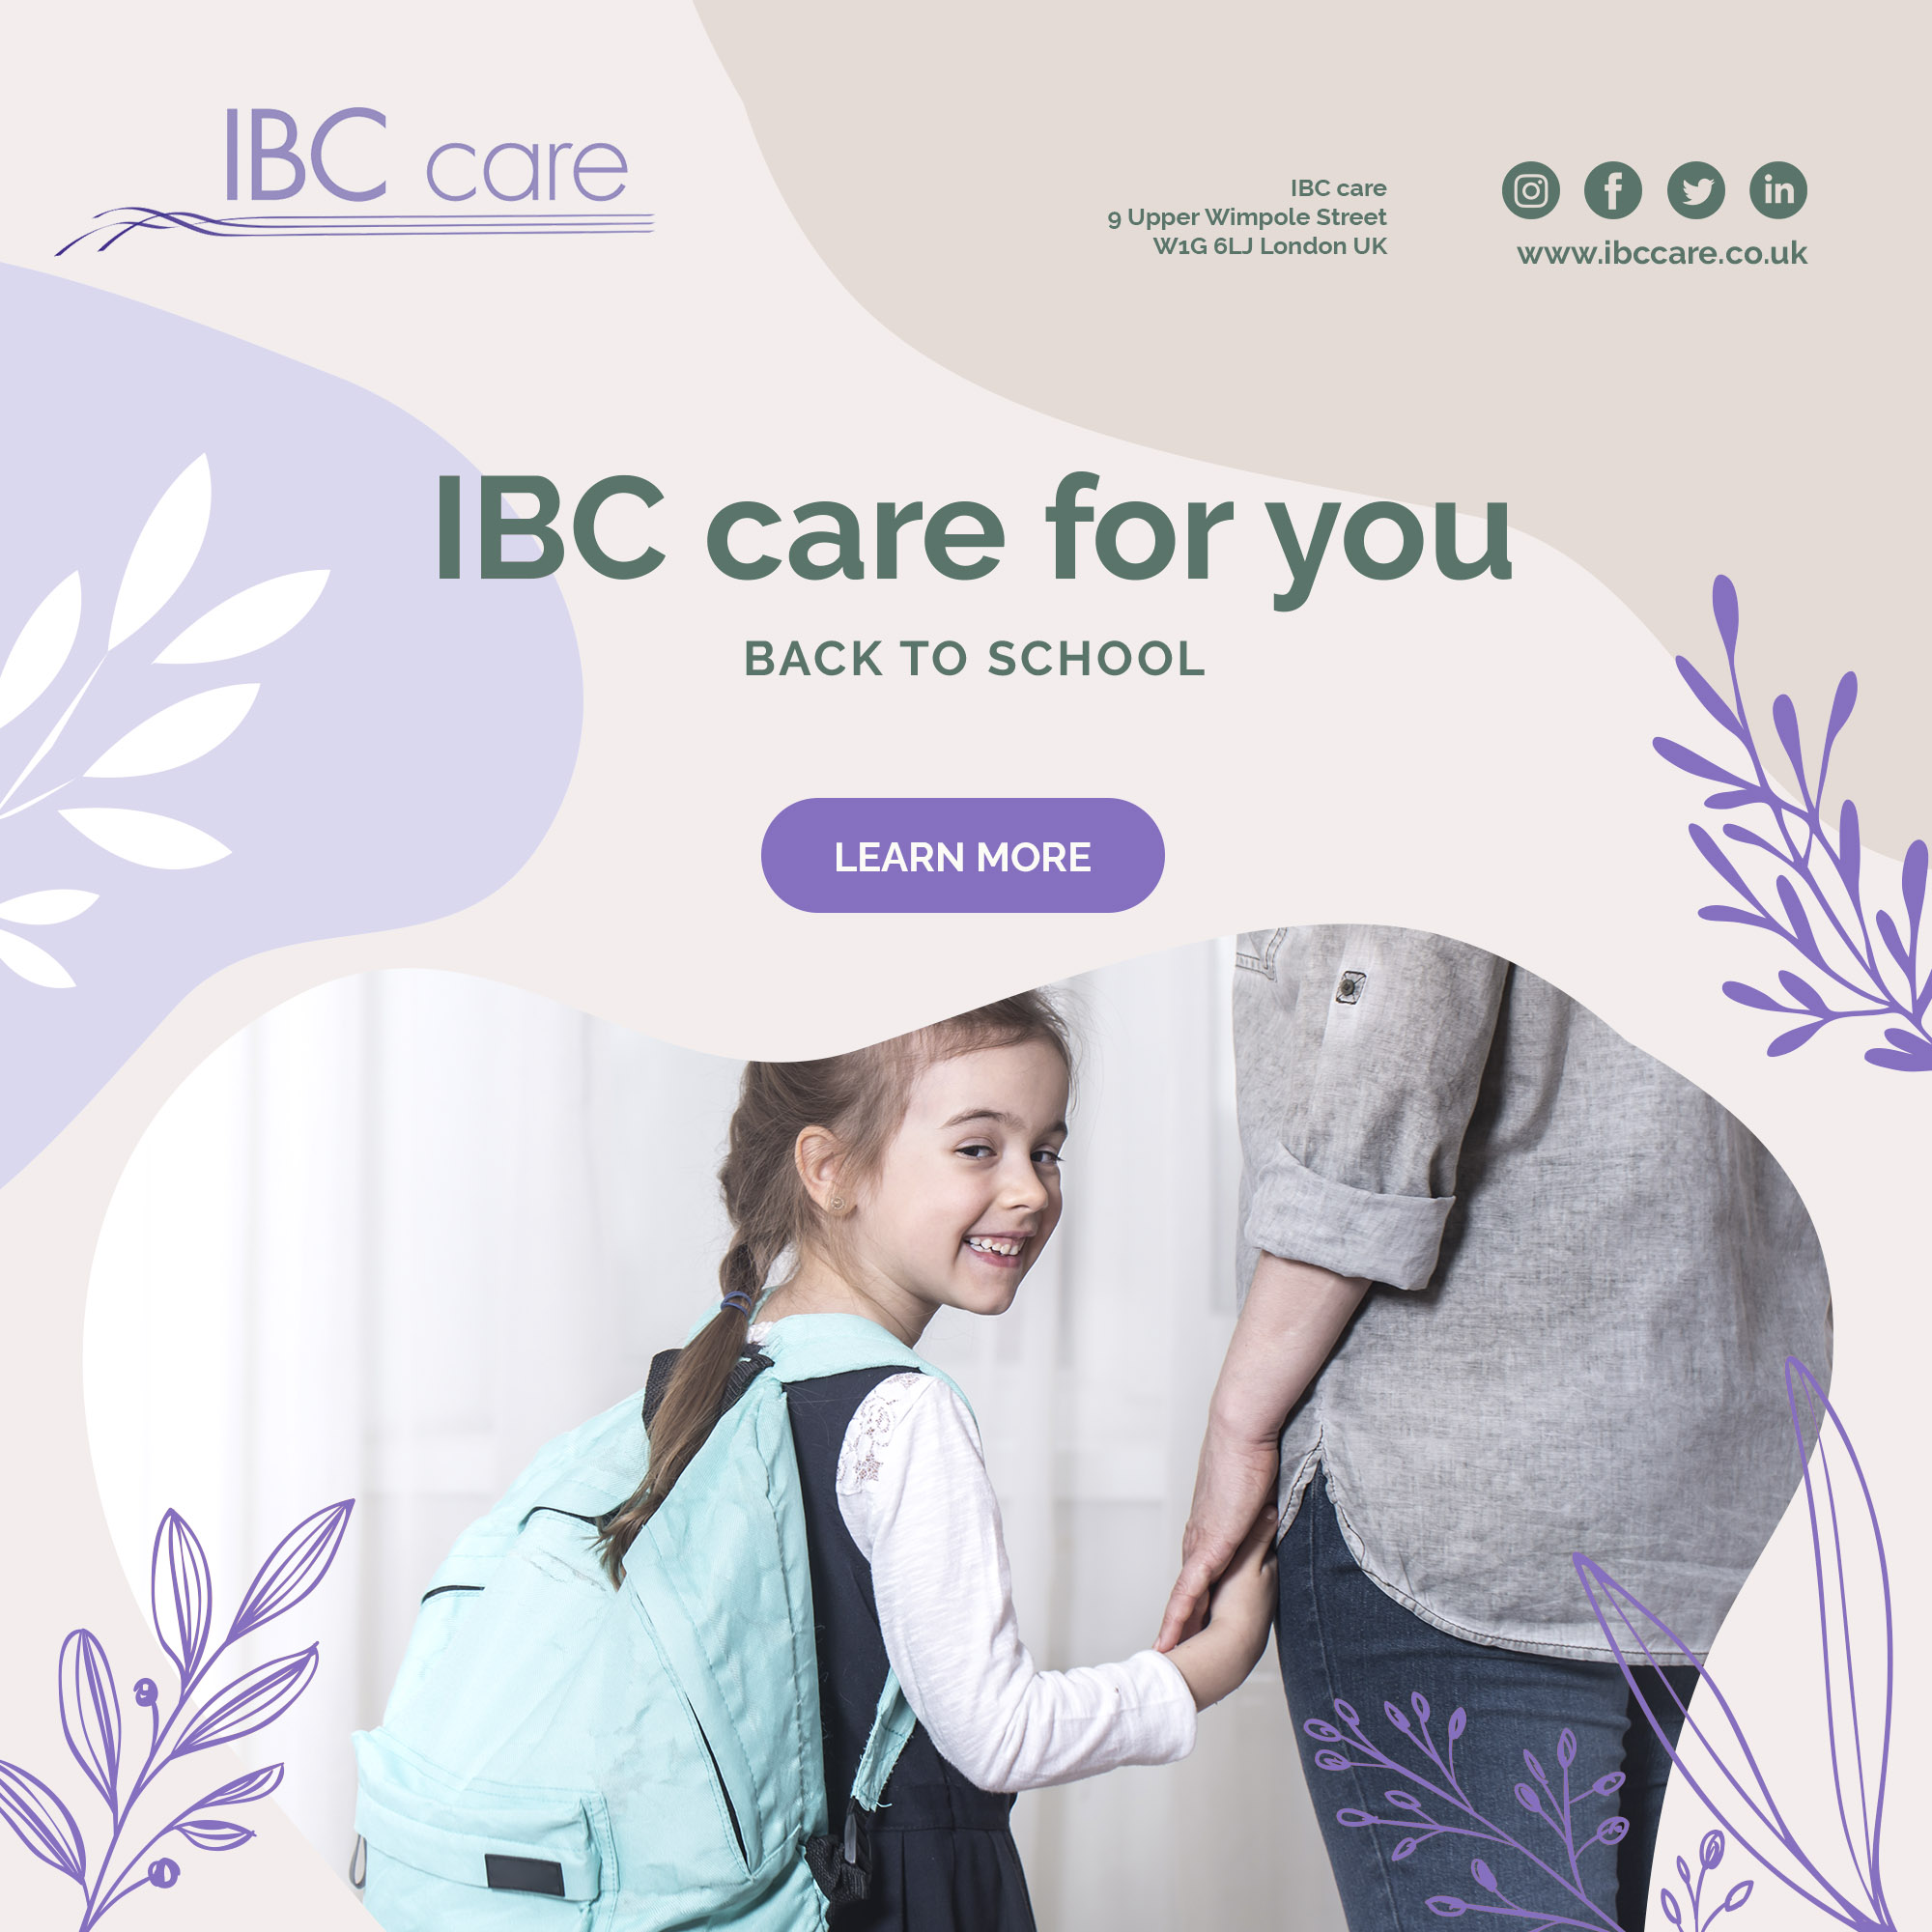 IBC care for you – Back to school